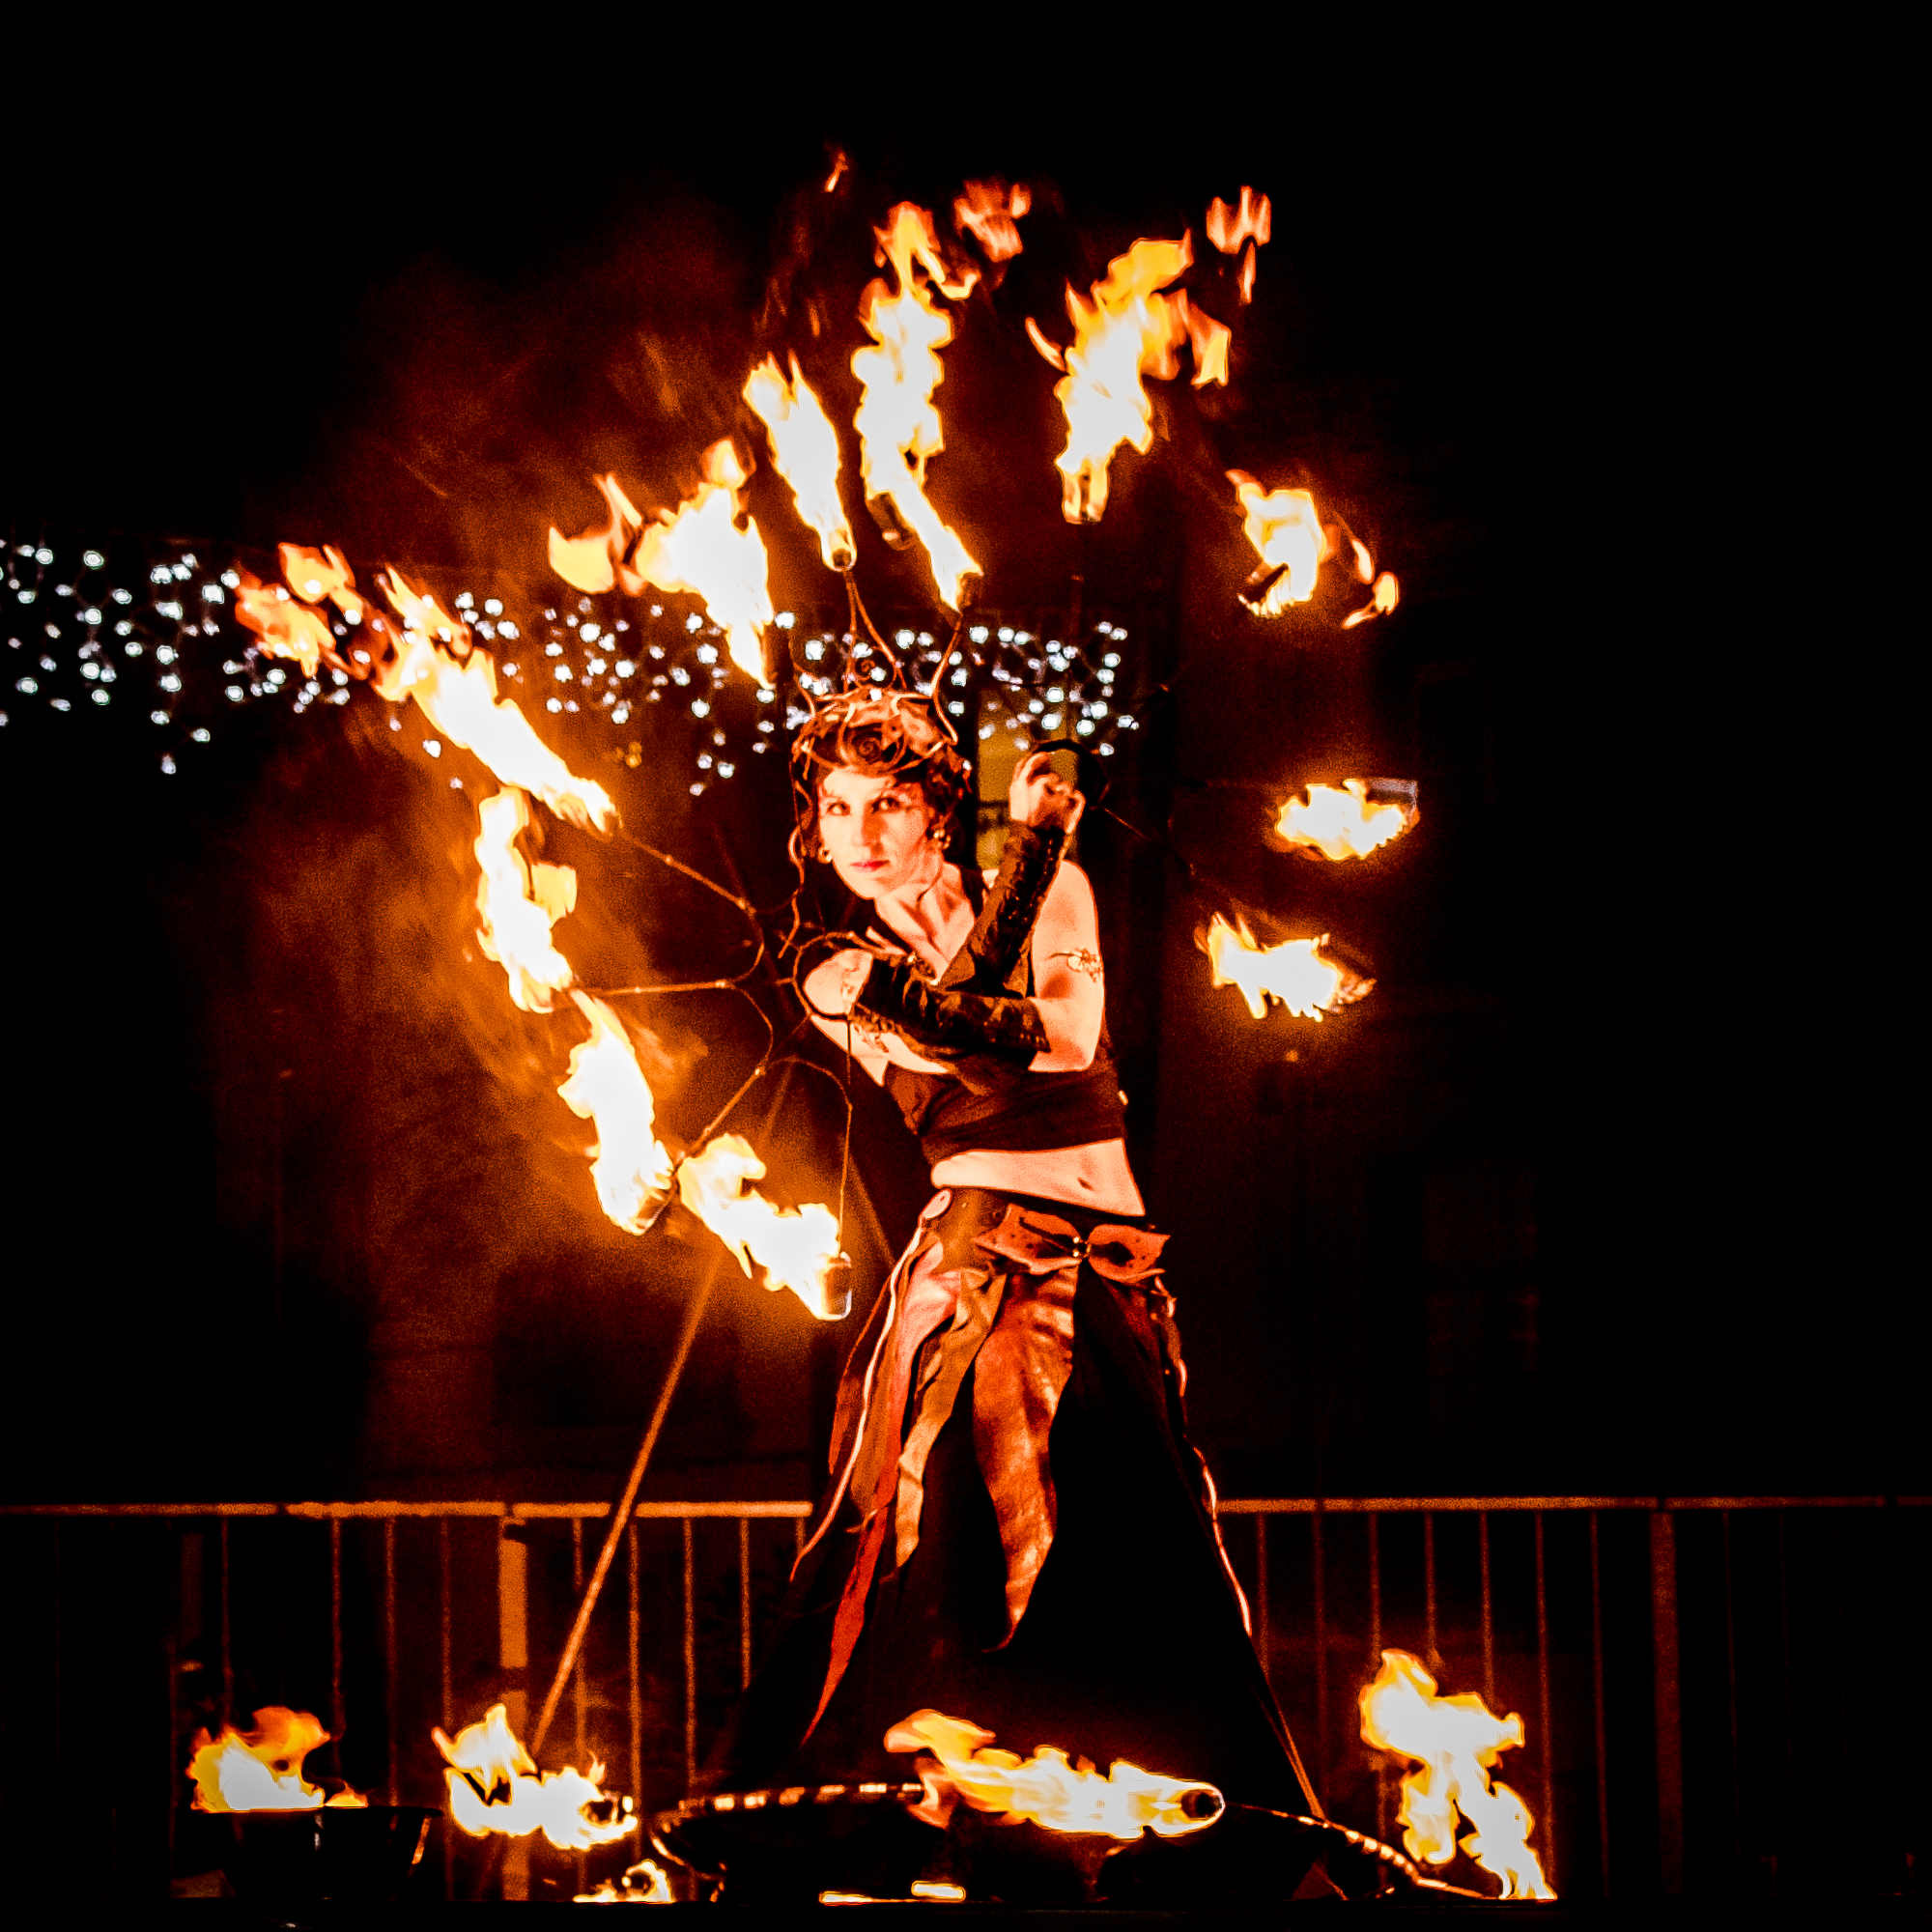 spectacle-de-danse-de-feu-et-artifices-Cirque-Indigo